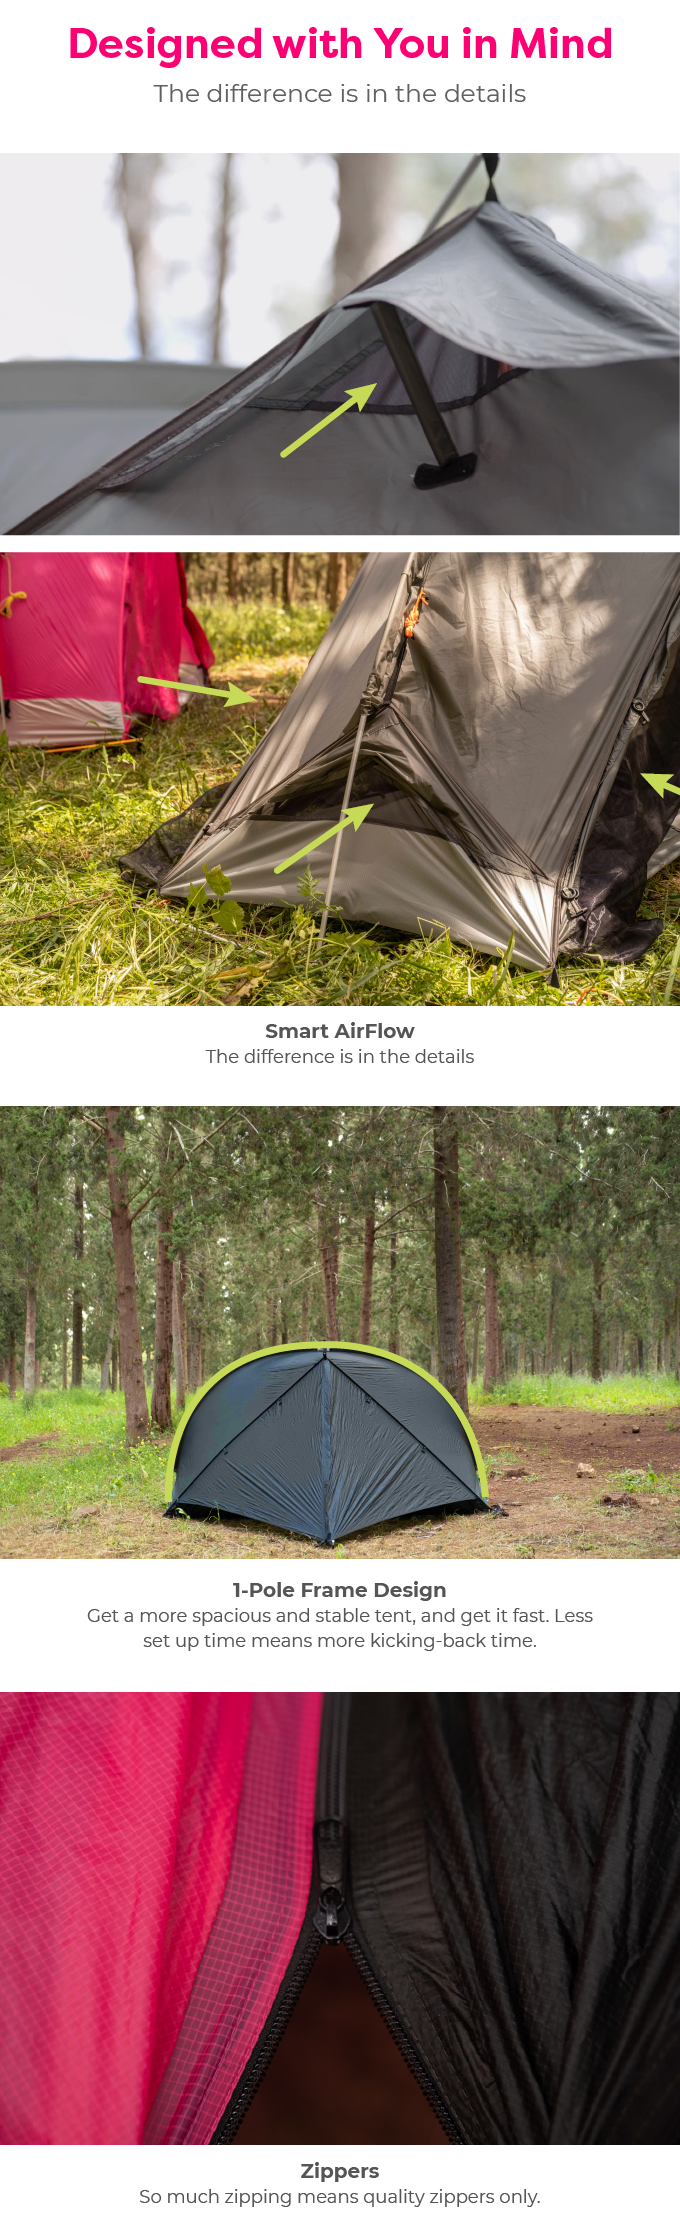 Rhinowolf 2 0 The All In One Attachable Super Tent By